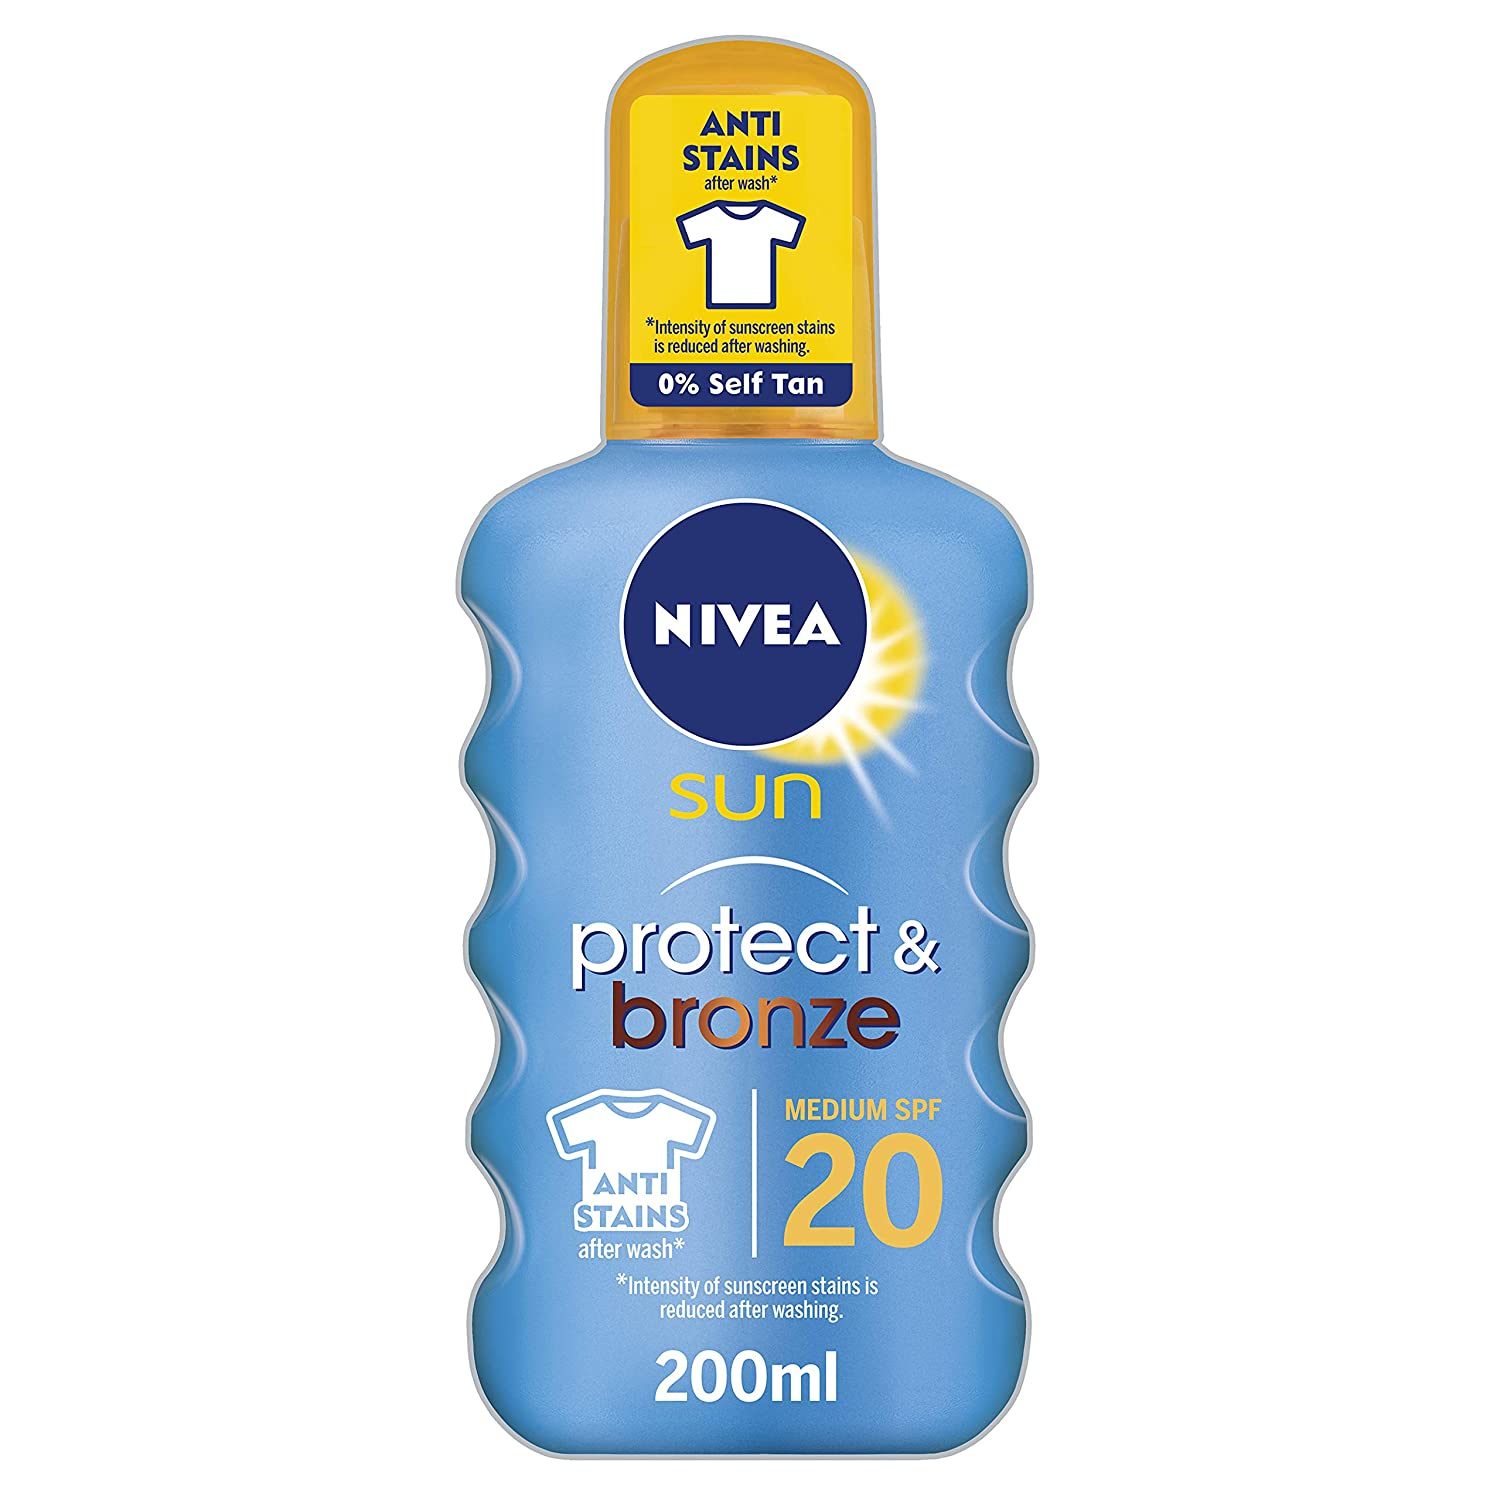 NIVEA SUN Tan Activating Suncream Spray SPF 30, Protect & Bronze, 200 ml BEIERSDORF UK 85445